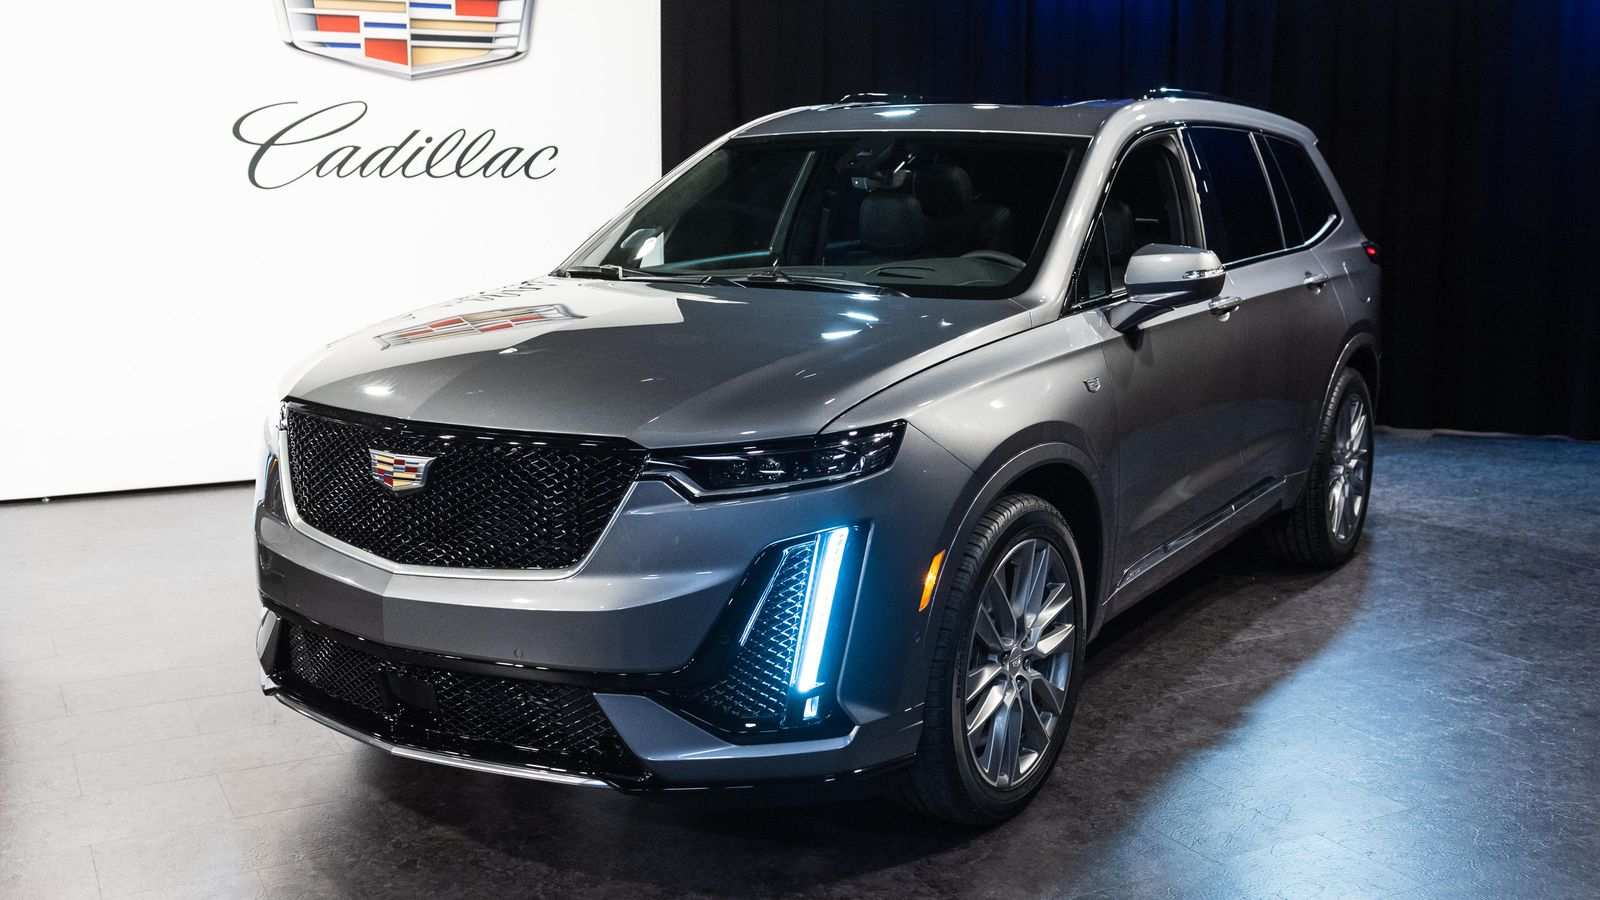 90 All New All New Cadillac Escalade 2020 Research New